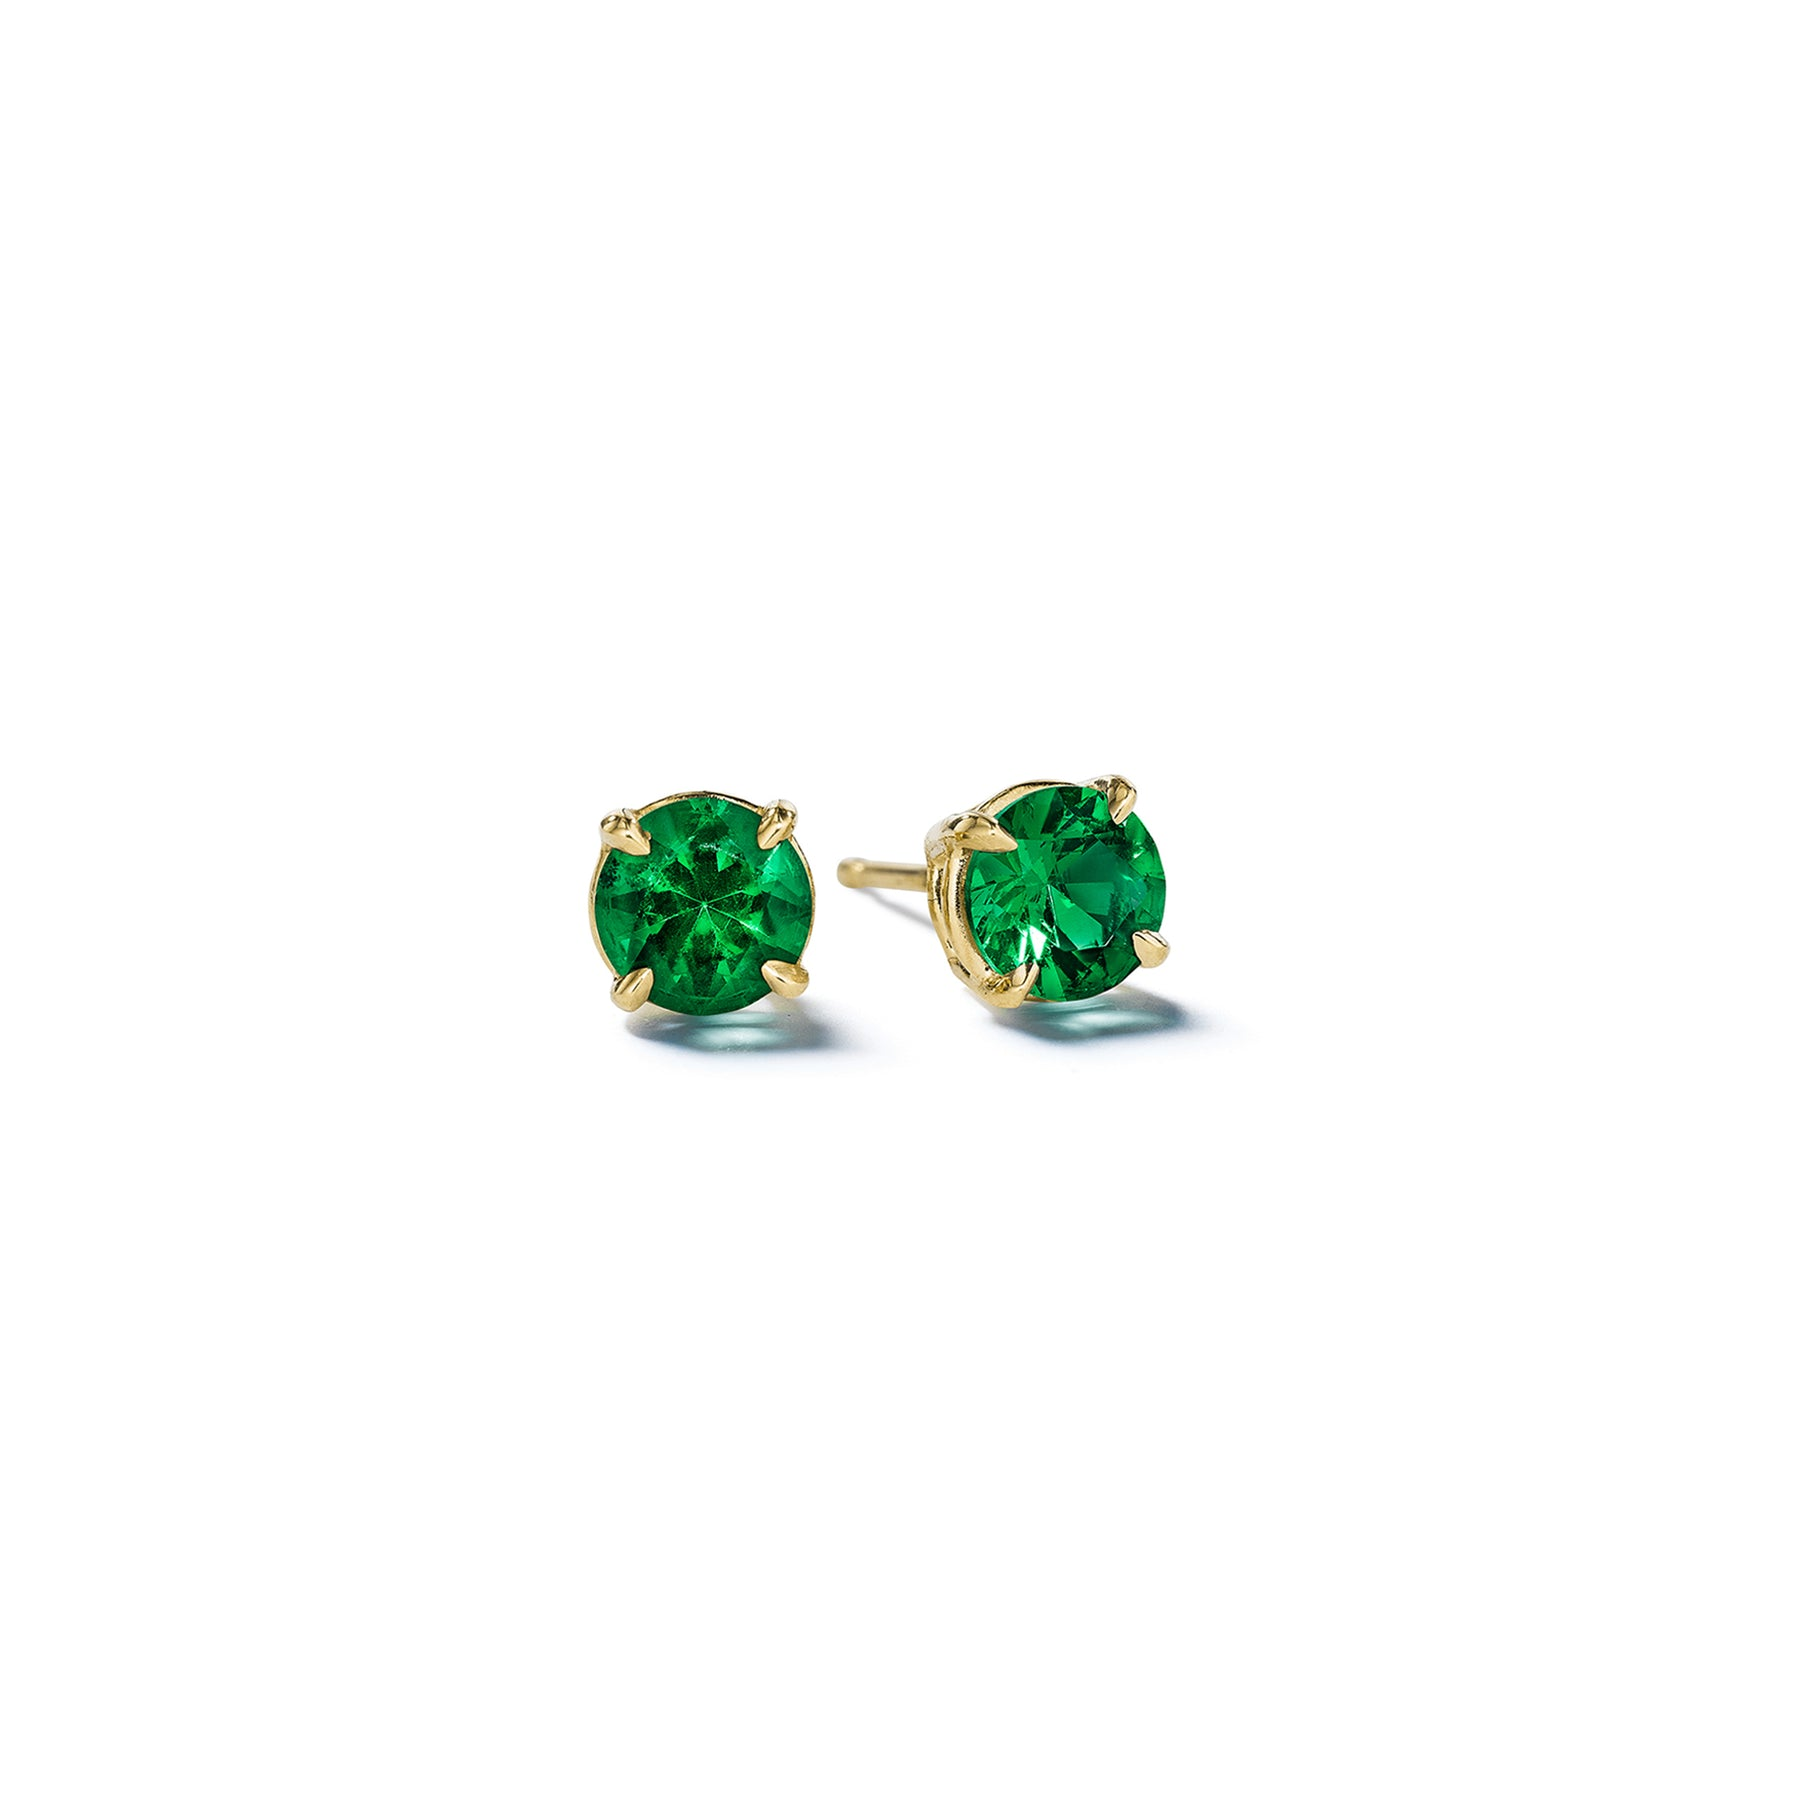 Mimi So Round Brilliant Emerald Stud Earrings_18k Yellow Gold